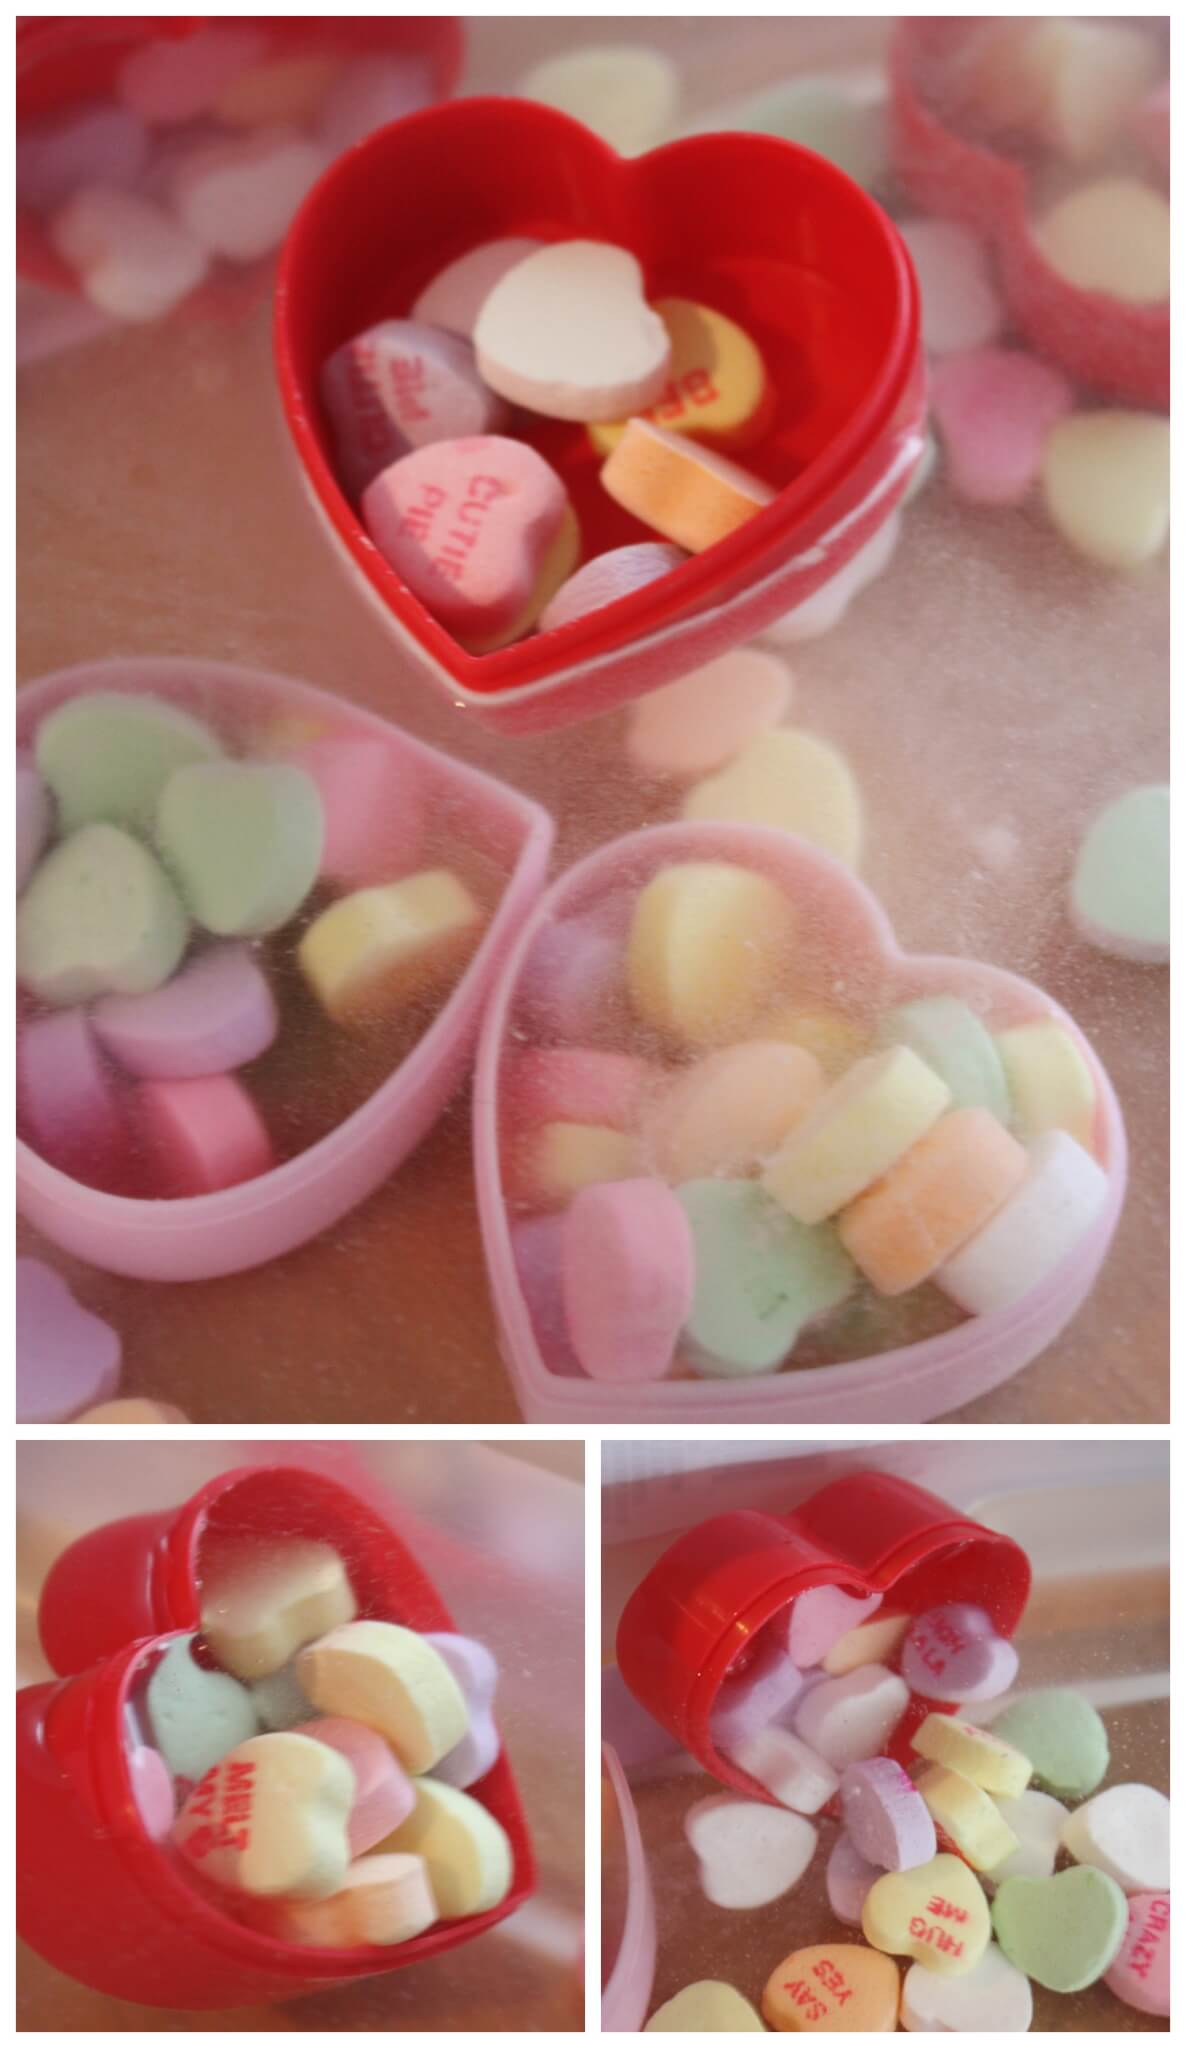 Candy Heart Sink The Boat Science Sensory Play